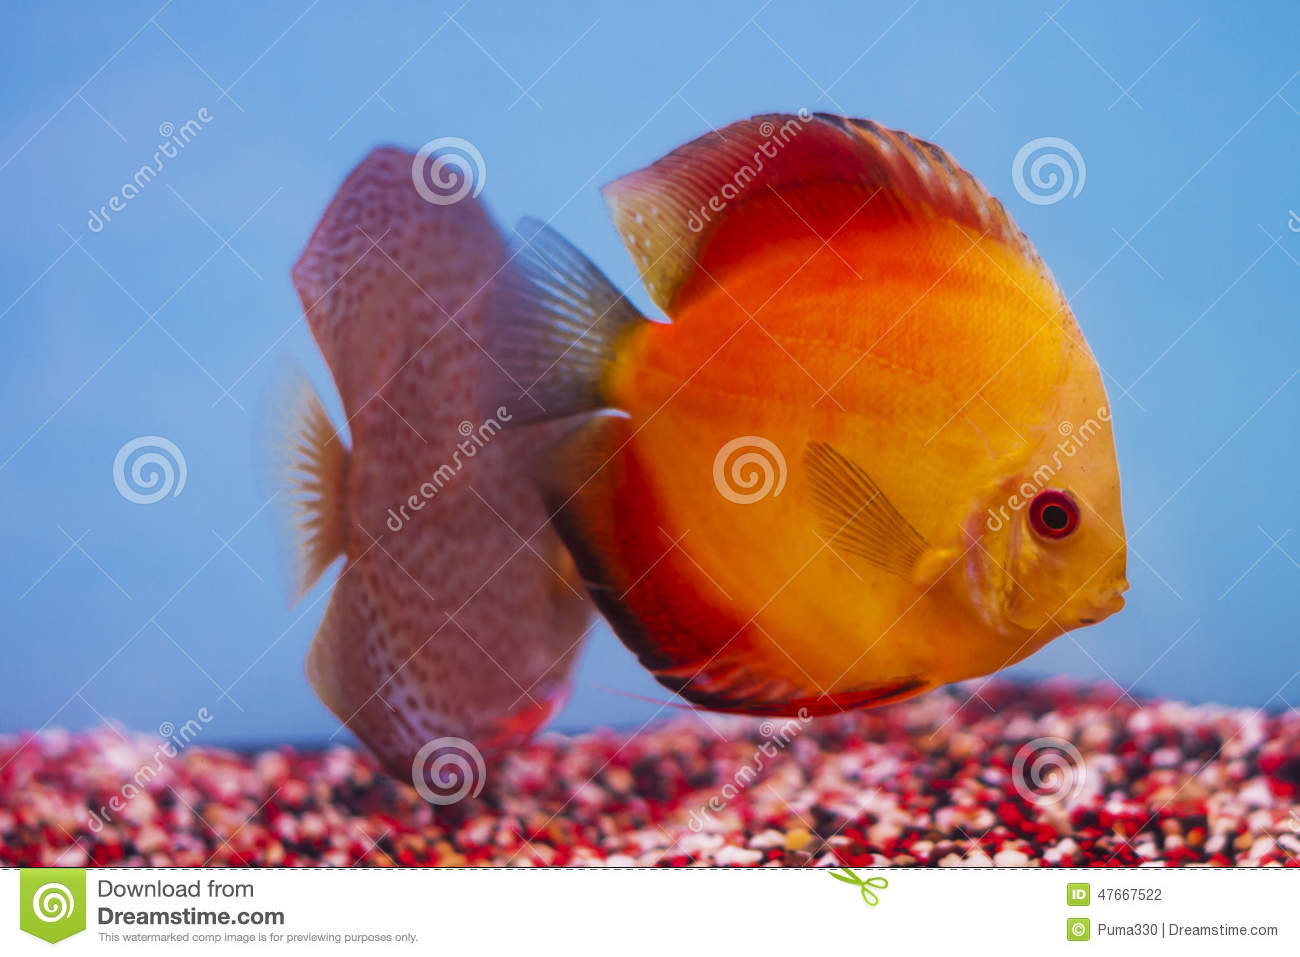 Aquarium - Discus Freshwater Aquarium Fish Stock Photo - Image of ...